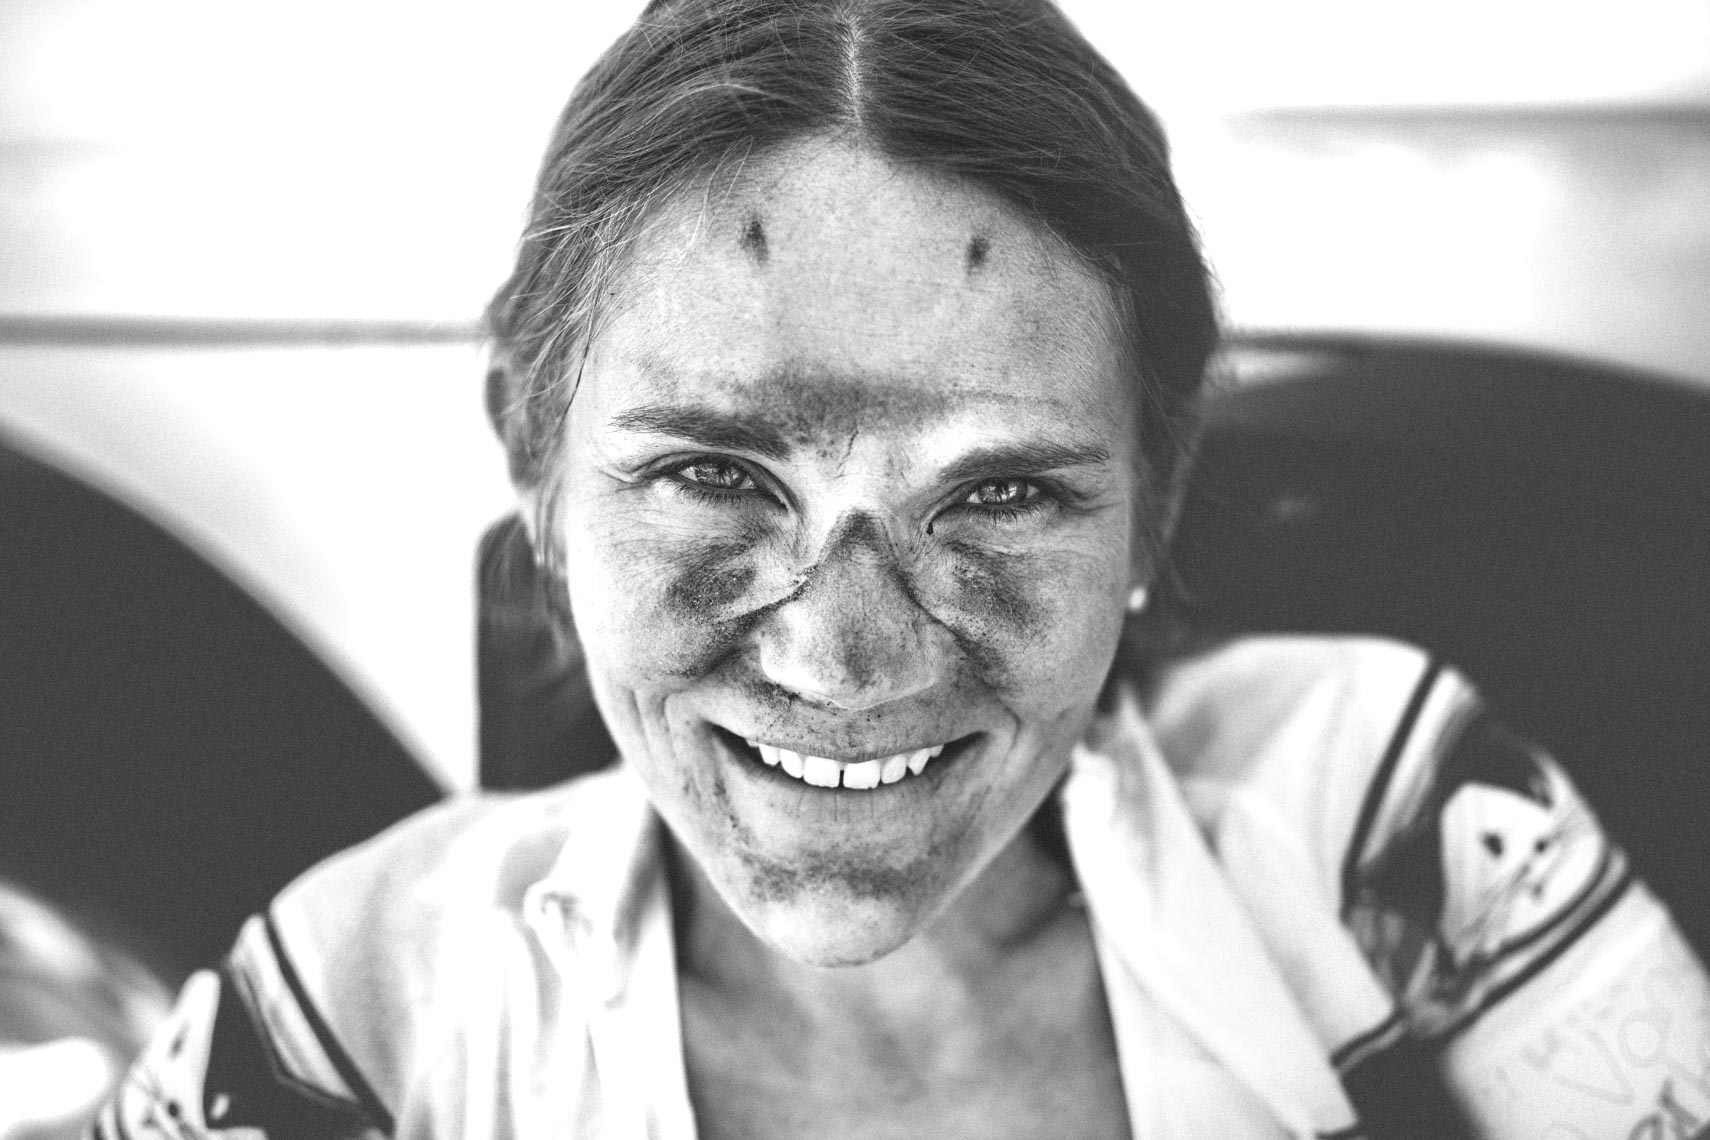 Dirty faced female mountain bike racer portrait